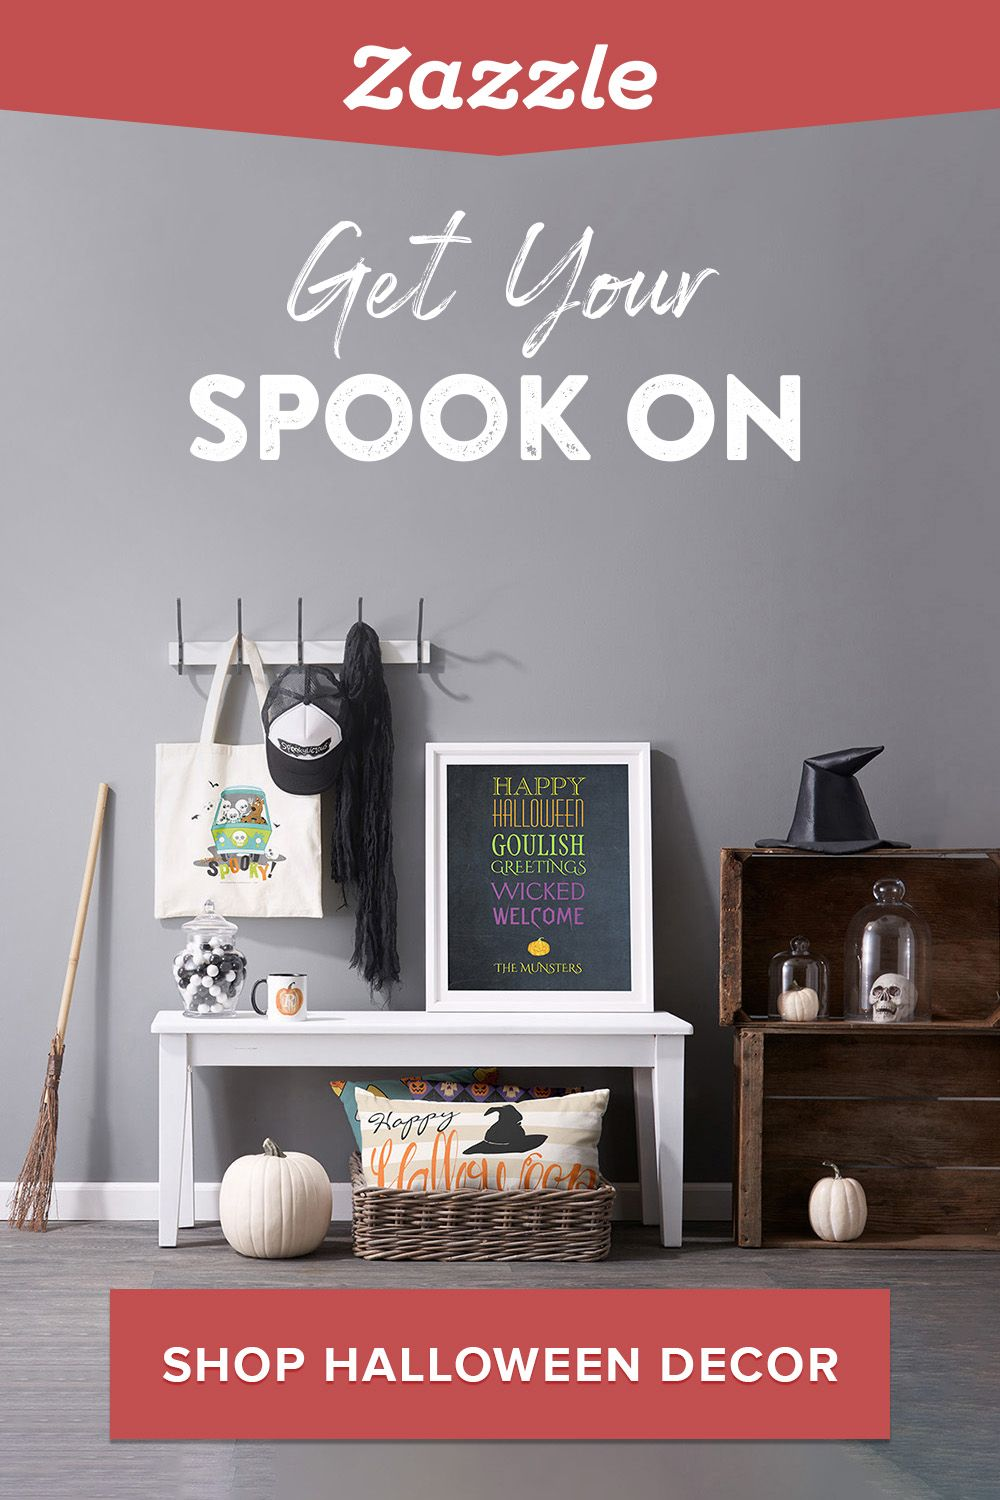 Get your spook on! Refresh your home decor with Halloween pillows, canvas prints, candles, mugs and more. Choose from hundreds of designs or create your own.